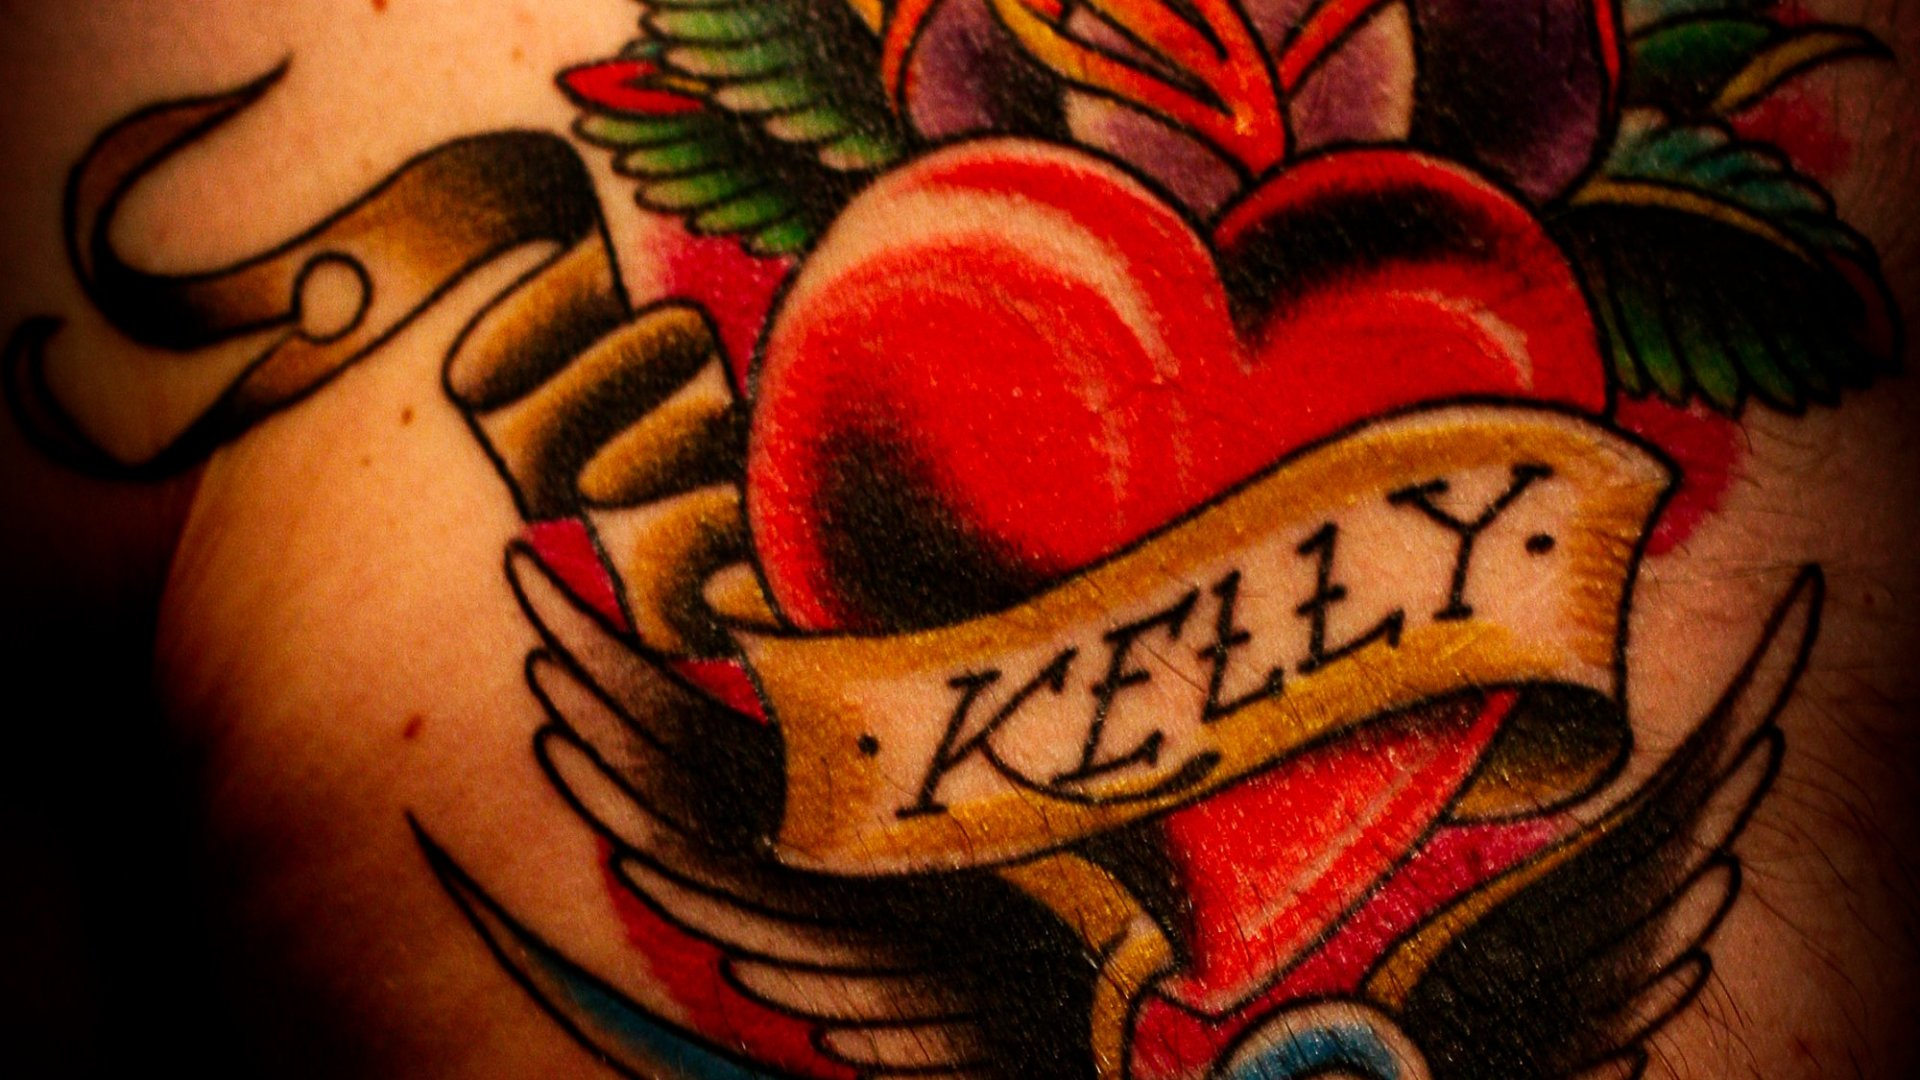 Here's Why Tattoos at Whole Foods Make Perfect Sense